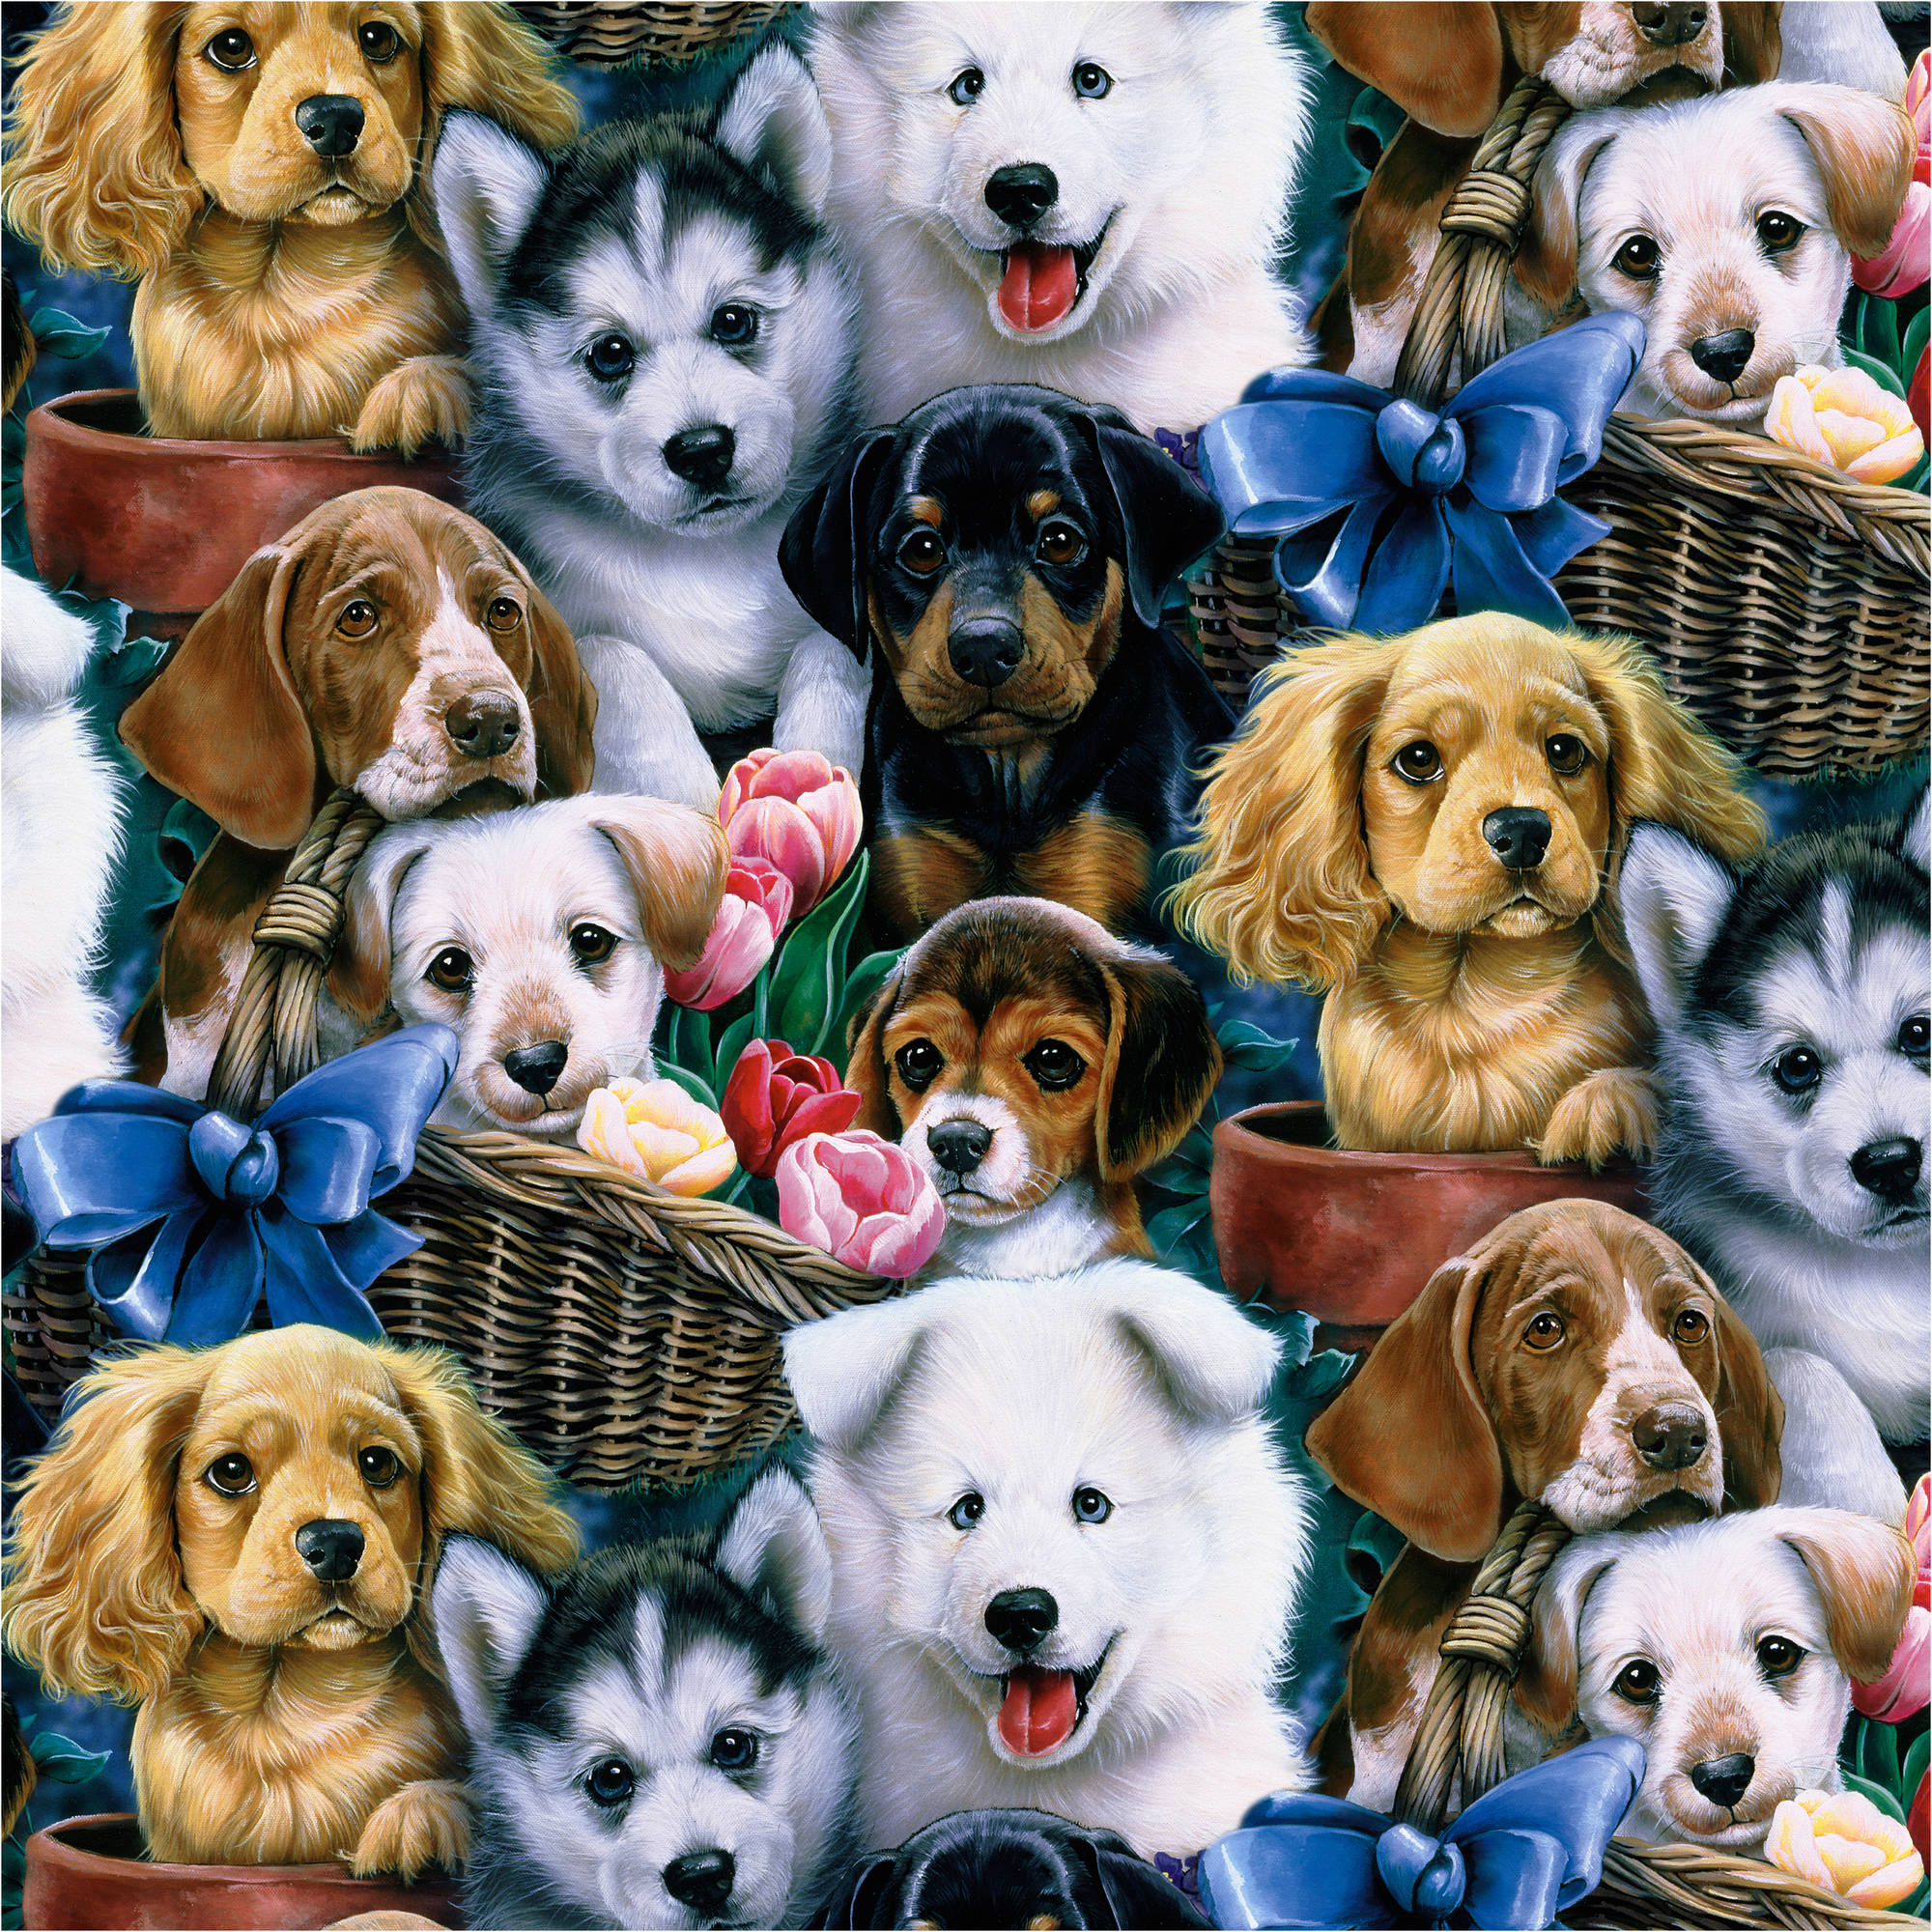 David Textiles Valentine's Puppies - 44""